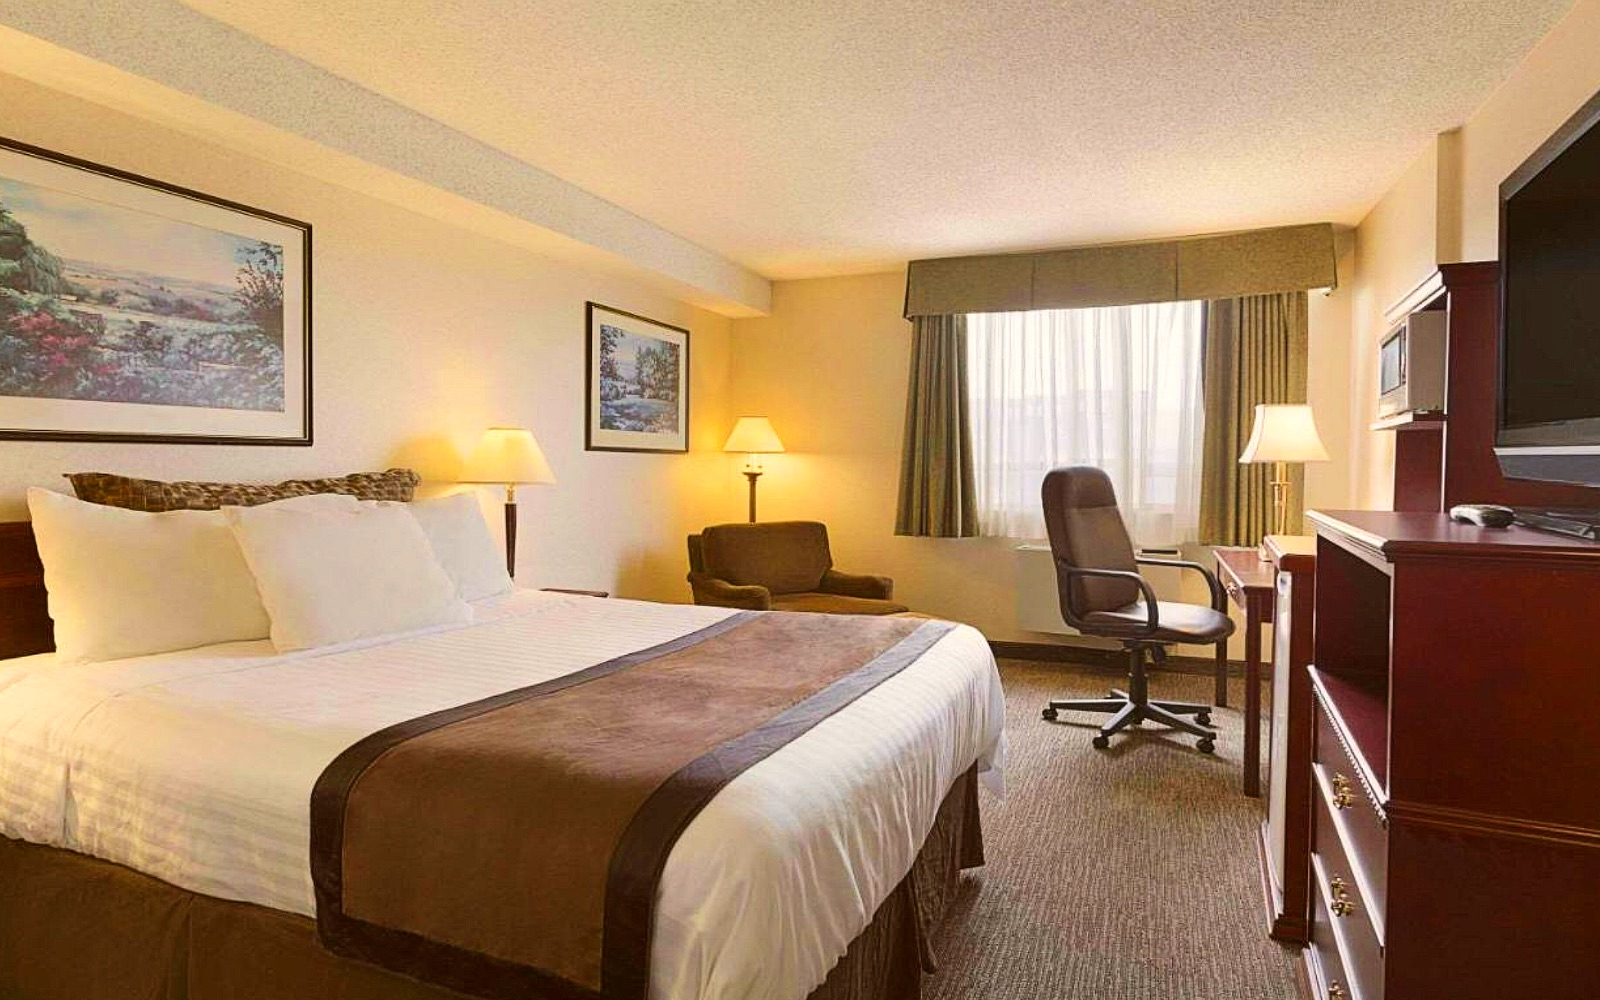 A room at the Travelodge Vancouver Airport